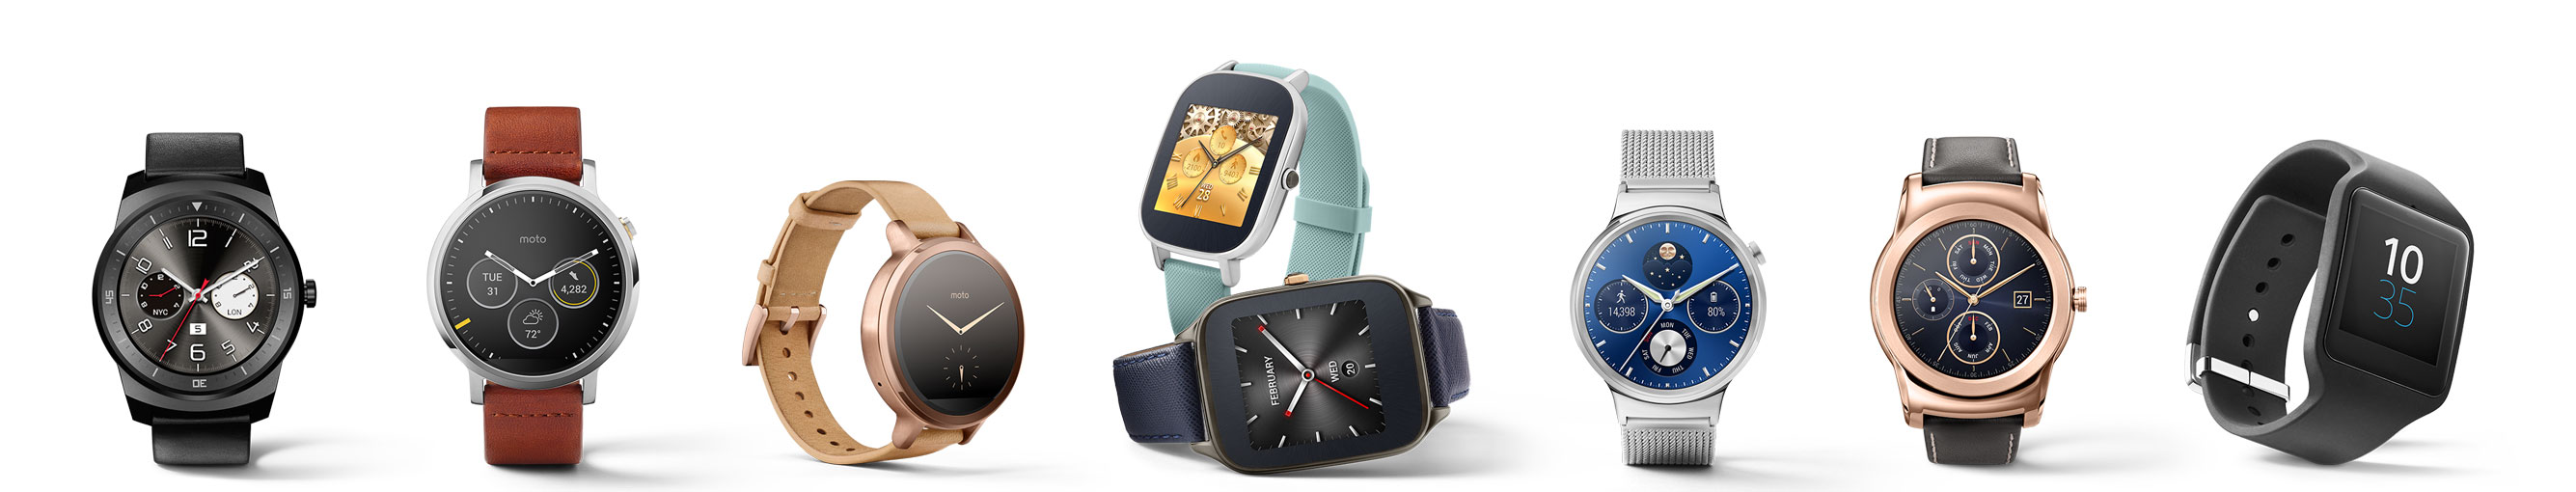 Android Wear line-up